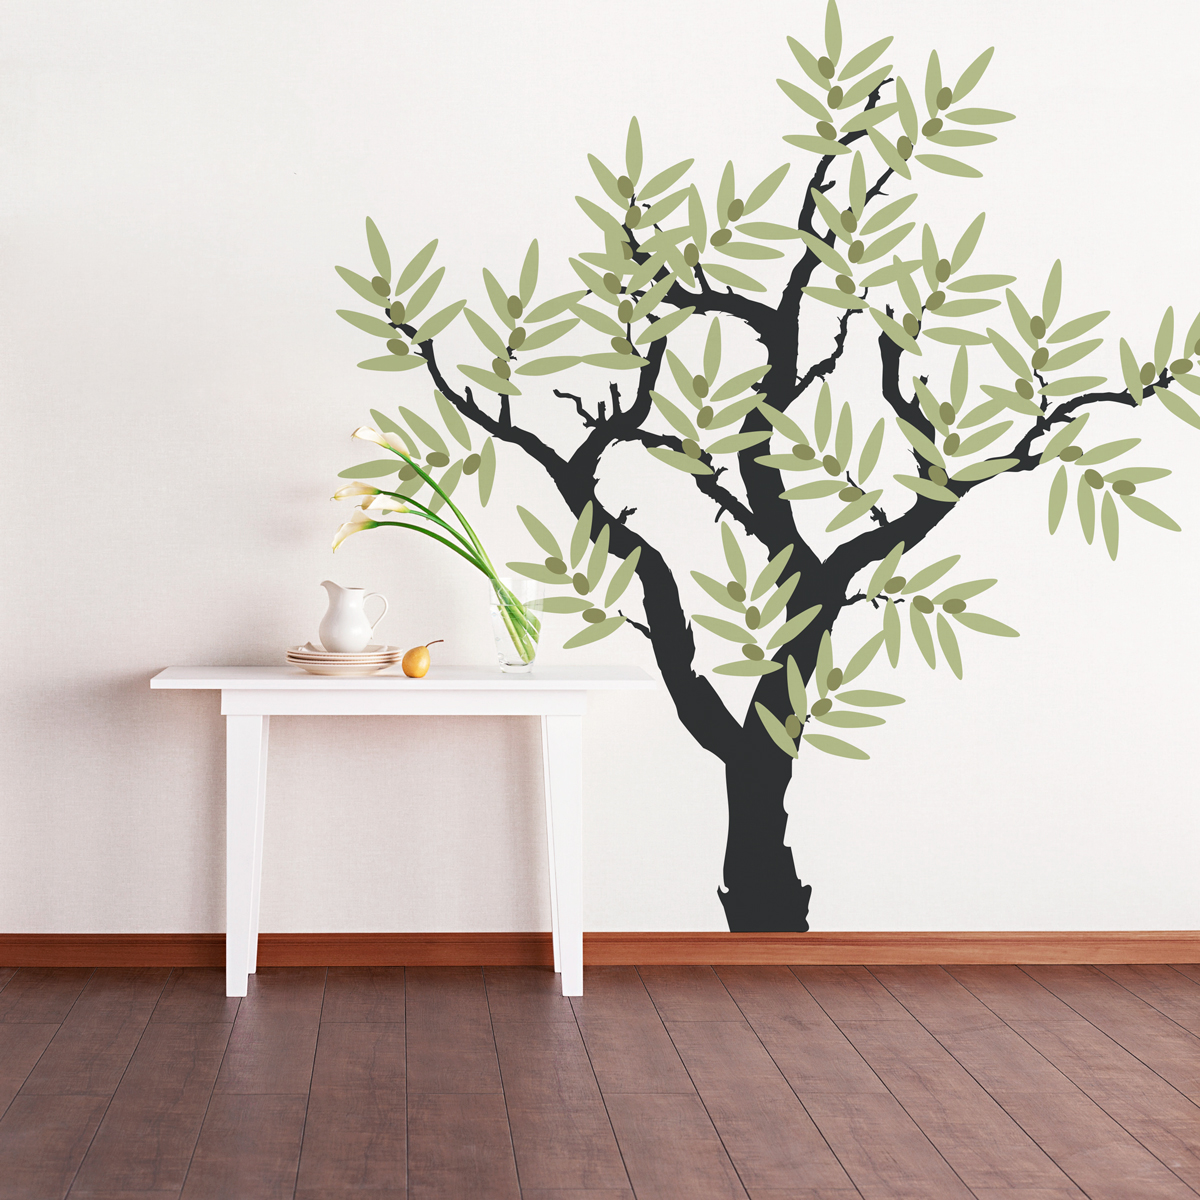 Mn13 Olivetree Wall Decal